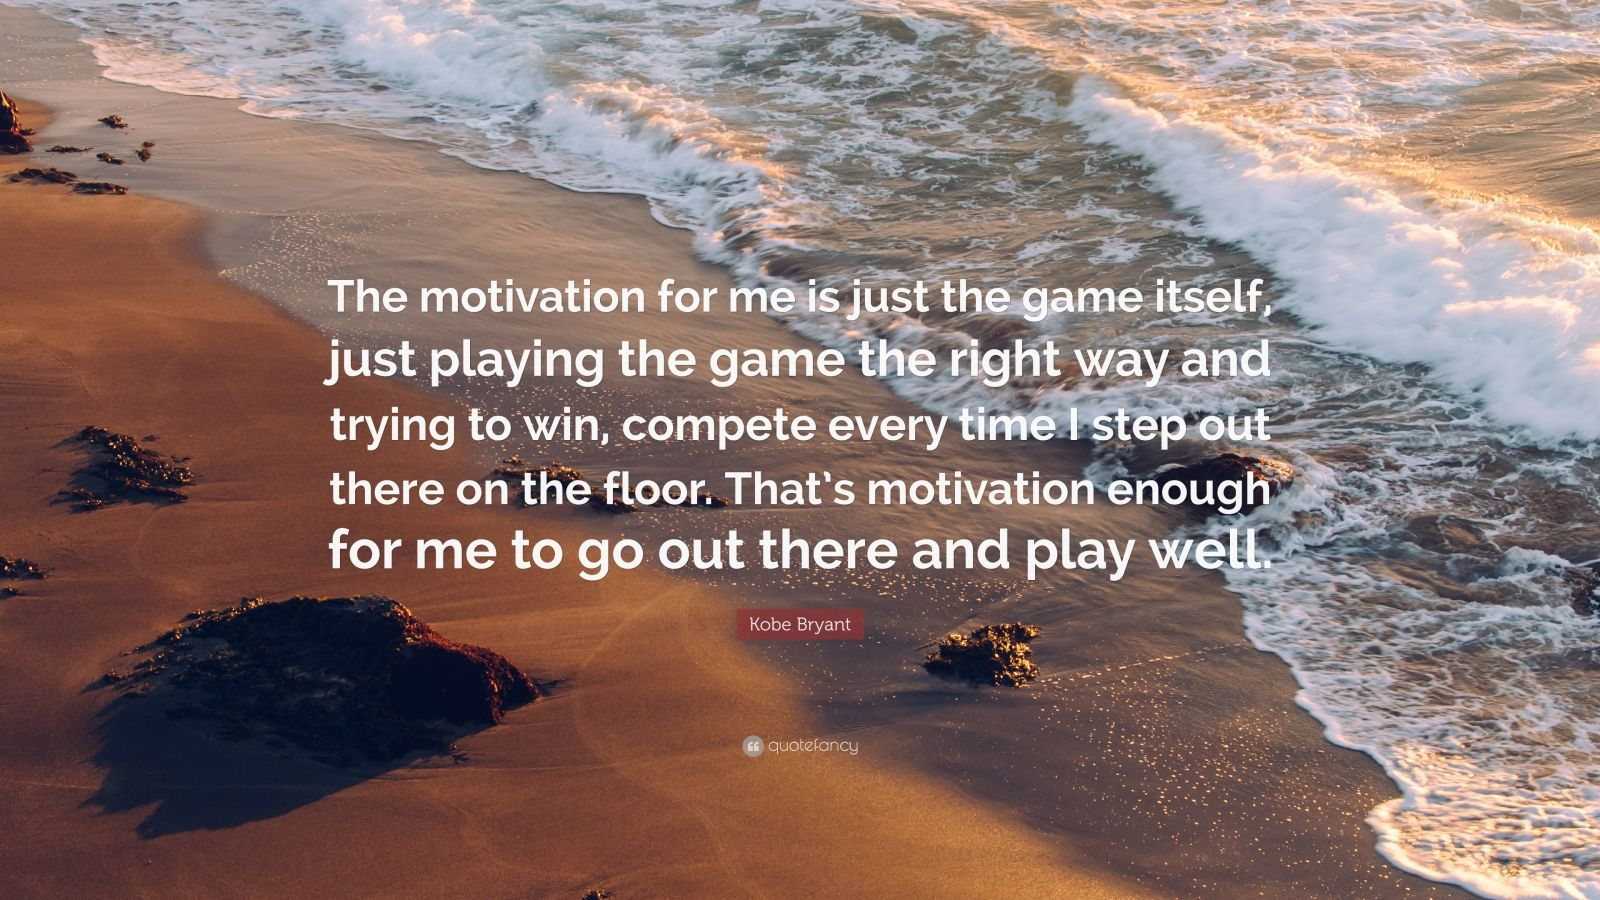 """Kobe Bryant Quote: """"The motivation for me is just the game itself, just playing the game the right way and trying to win, compete every time I step out there on the floor. That's motivation enough for me to go out there and play well."""""""